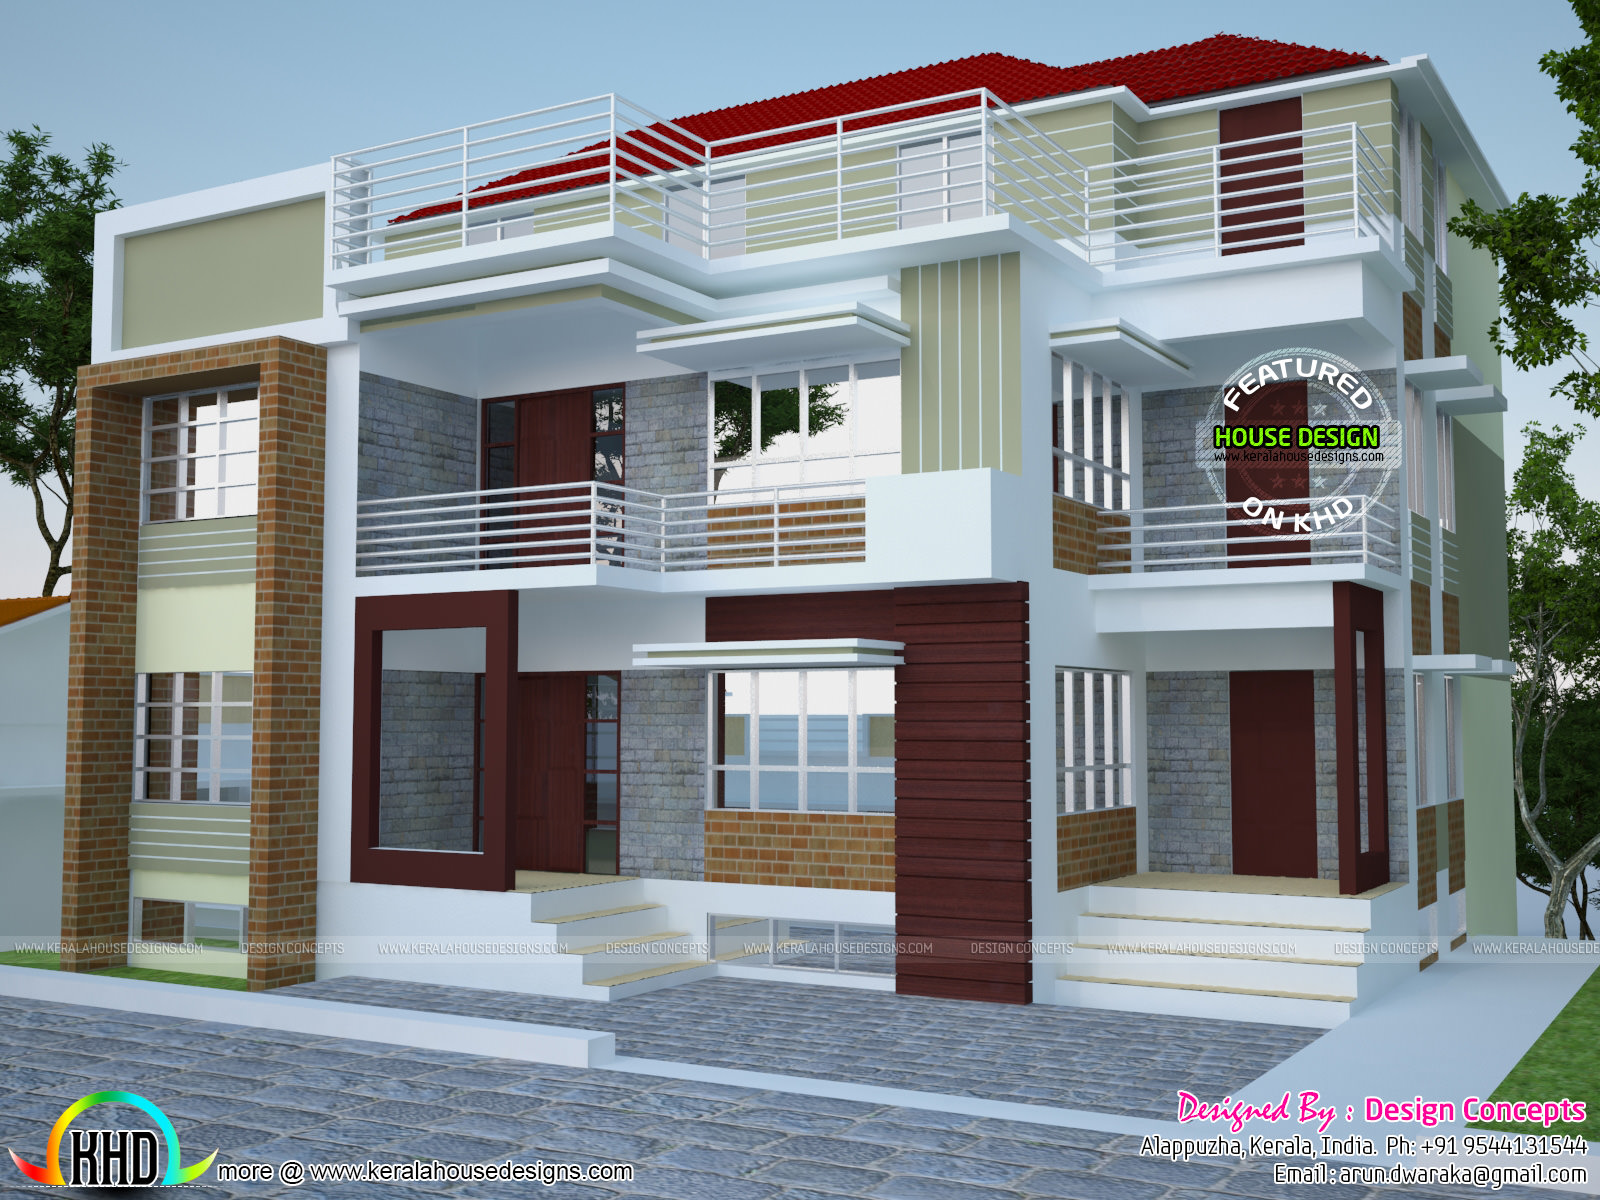 Multi family 4 plex home plan kerala home design and for Home designs 2 floor